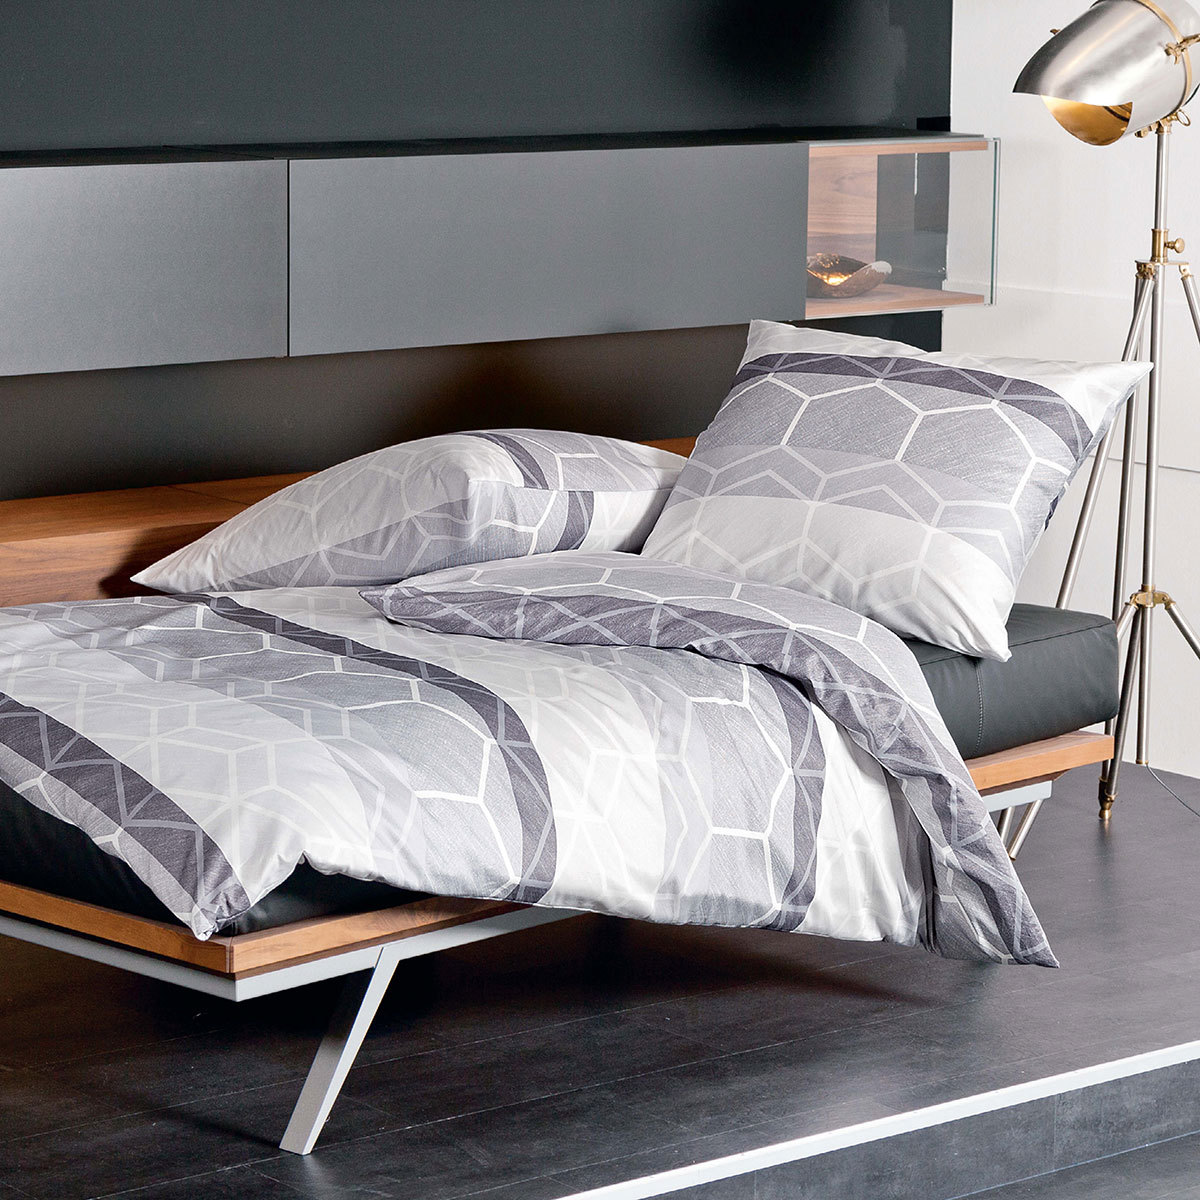 janine mako satin bettw sche moments 98017 08 g nstig online kaufen bei bettwaren shop. Black Bedroom Furniture Sets. Home Design Ideas